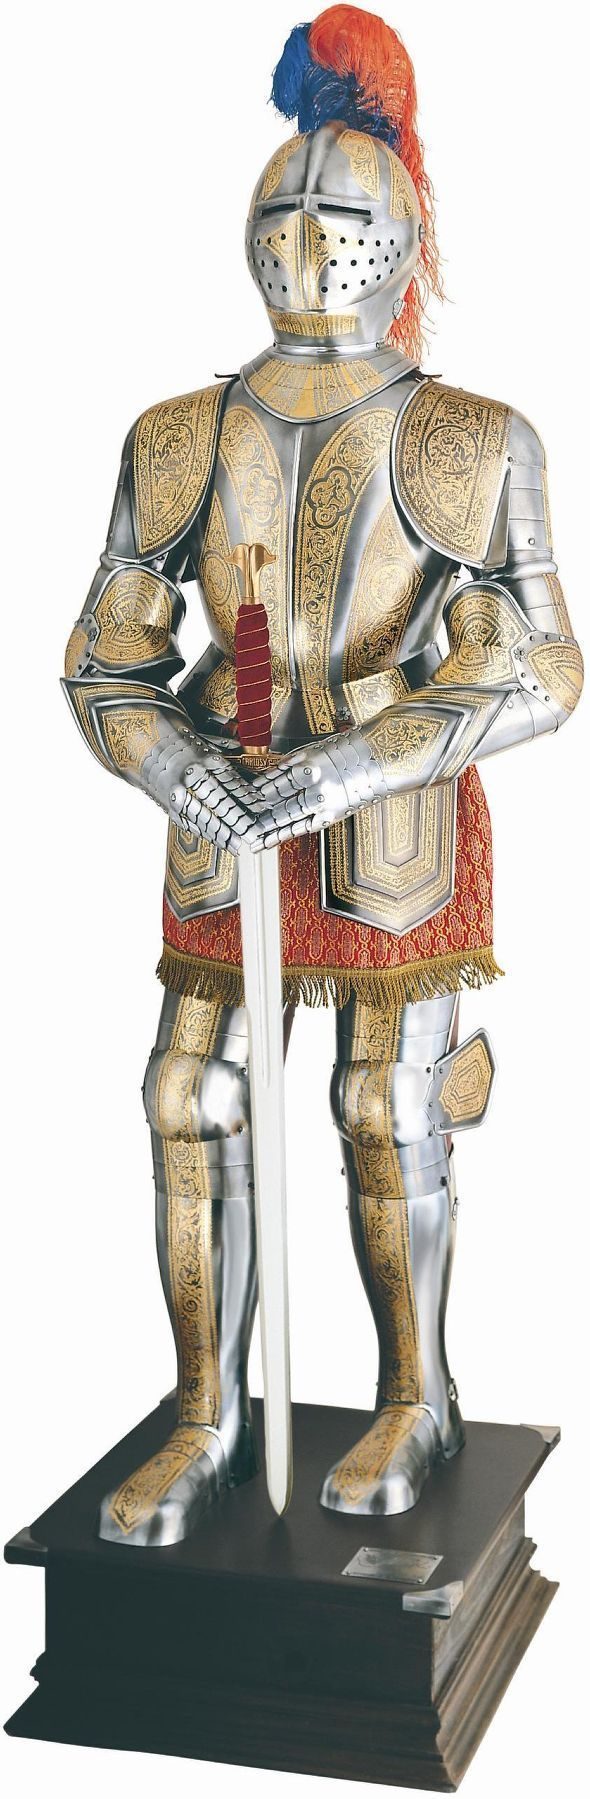 Deluxe Gold Etched Medieval Knight Suit of Armor   by Marto of Toledo Spain